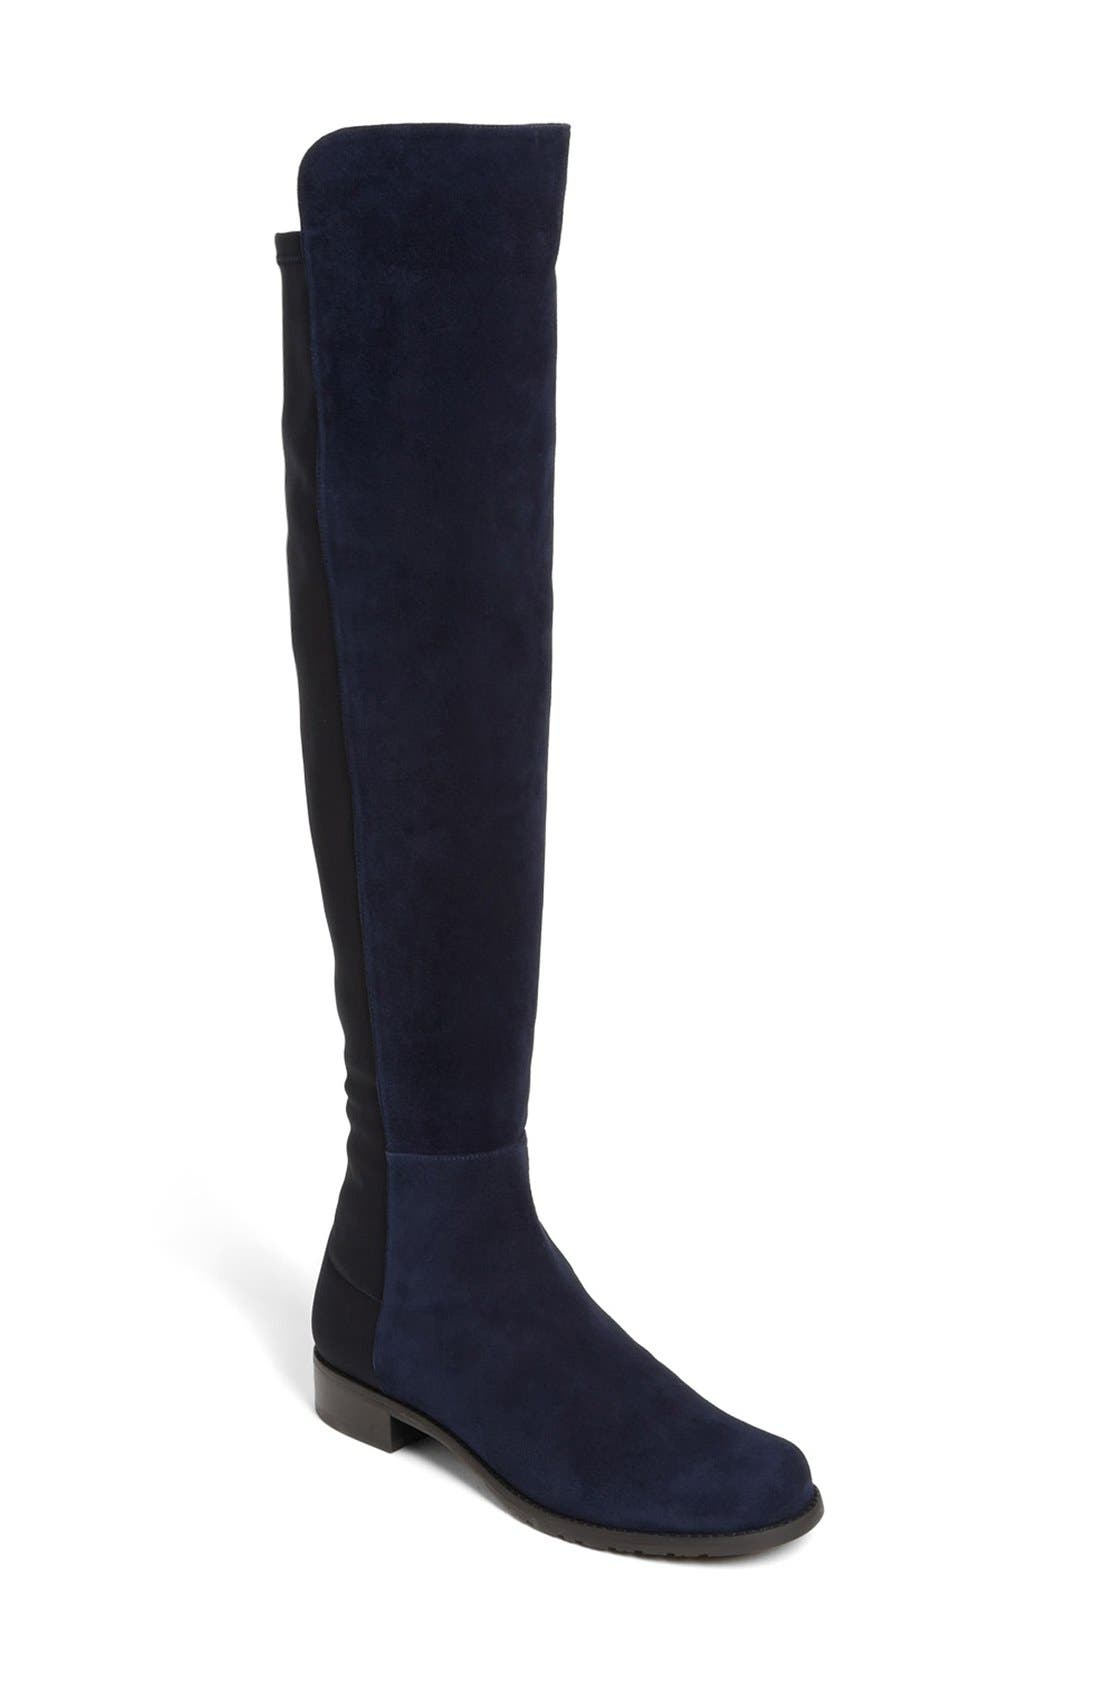 Main Image - Stuart Weitzman 5050 Over the Knee Leather Boot (Women)